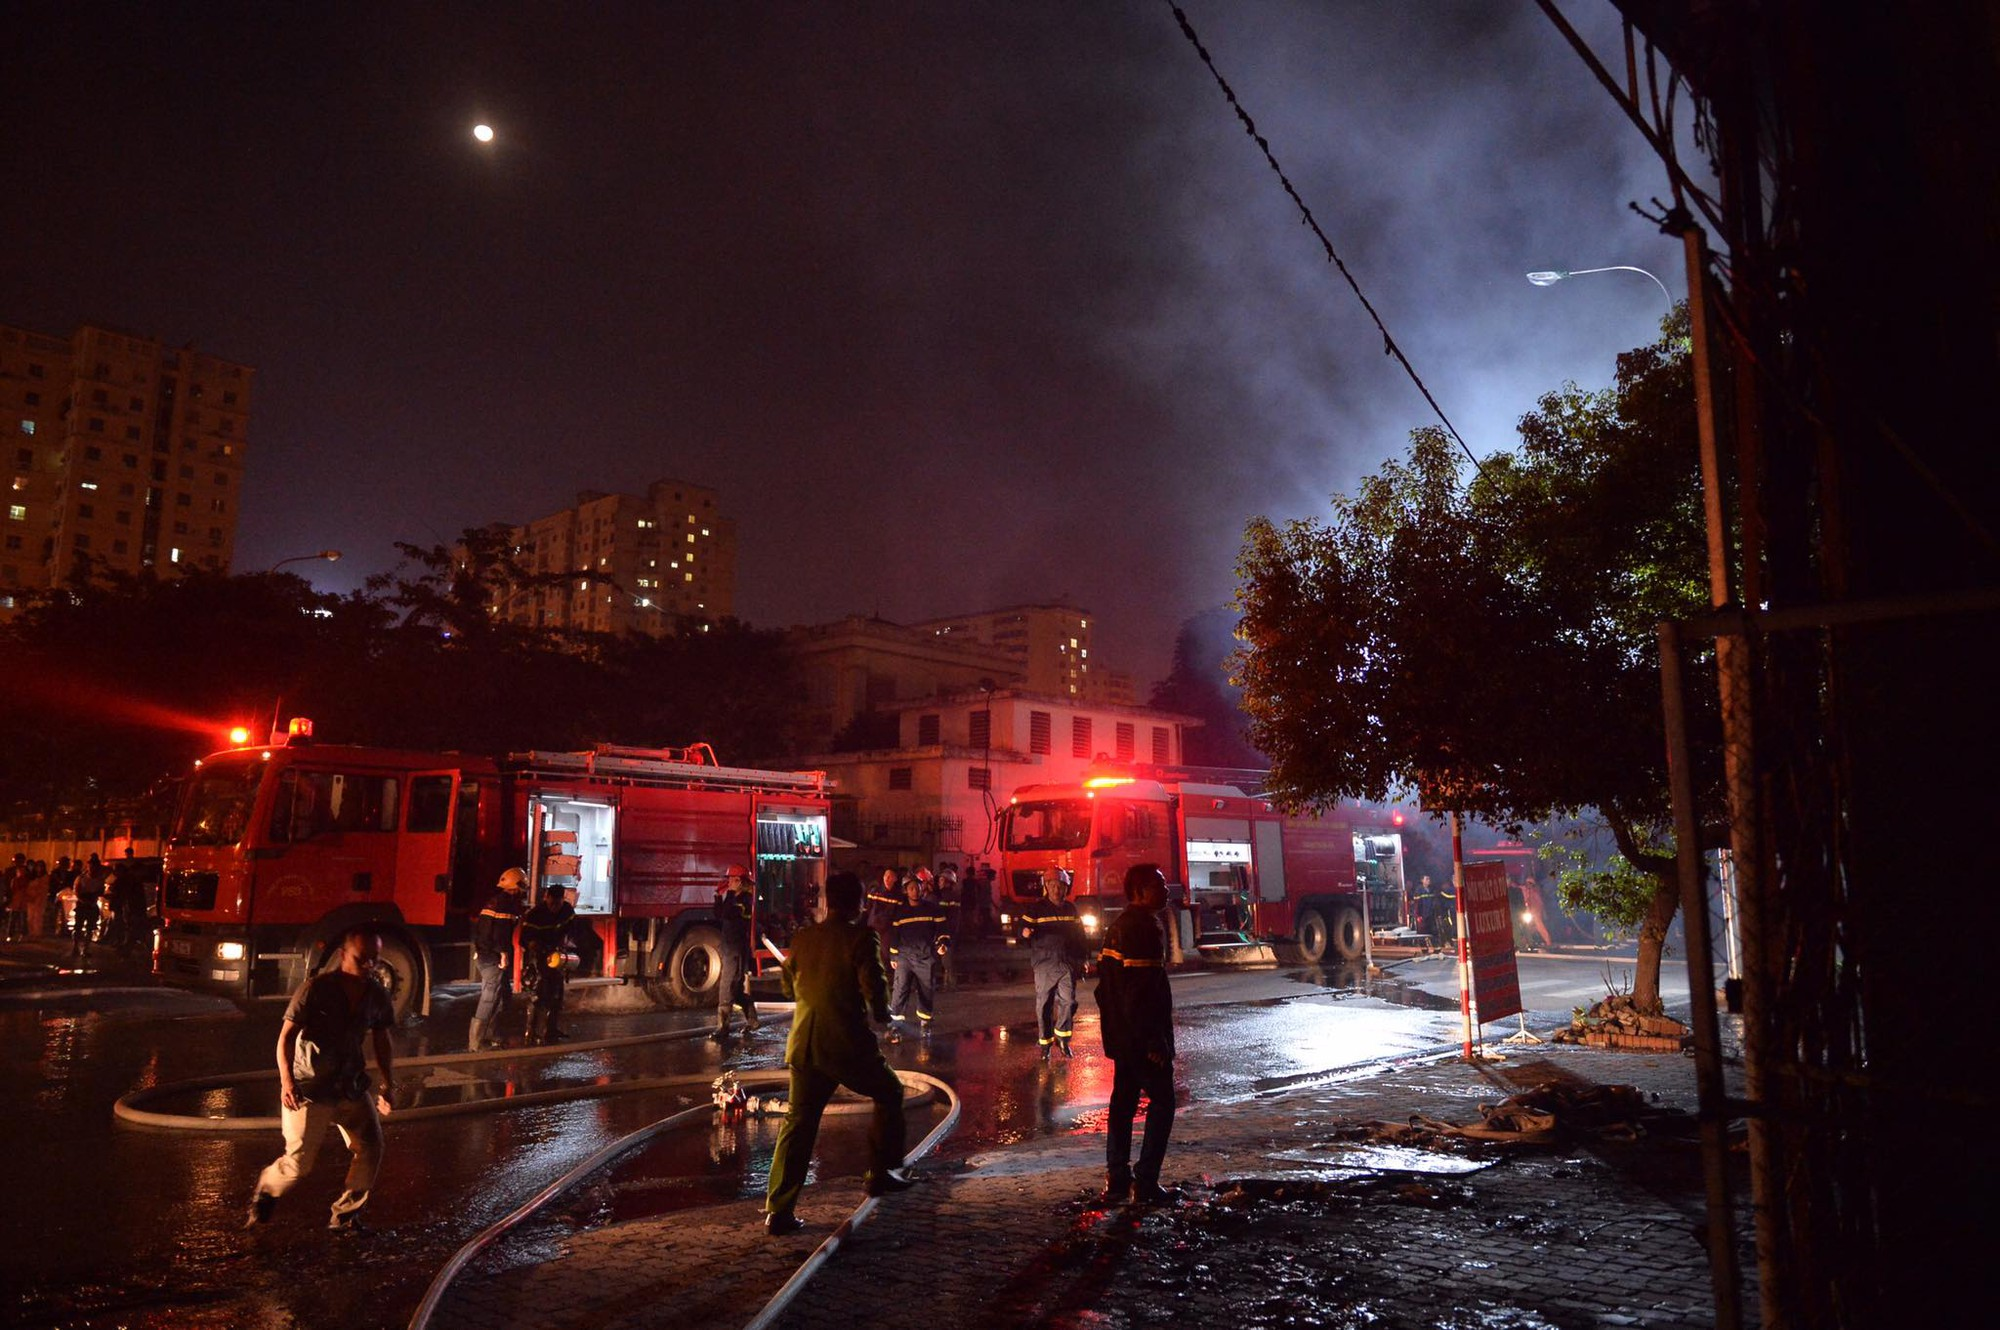 Hanoi: Large Fire in garage & # 39; inside the car in & # 39; midnight, many drivers drive to drive & # 39; away - Photo 4.